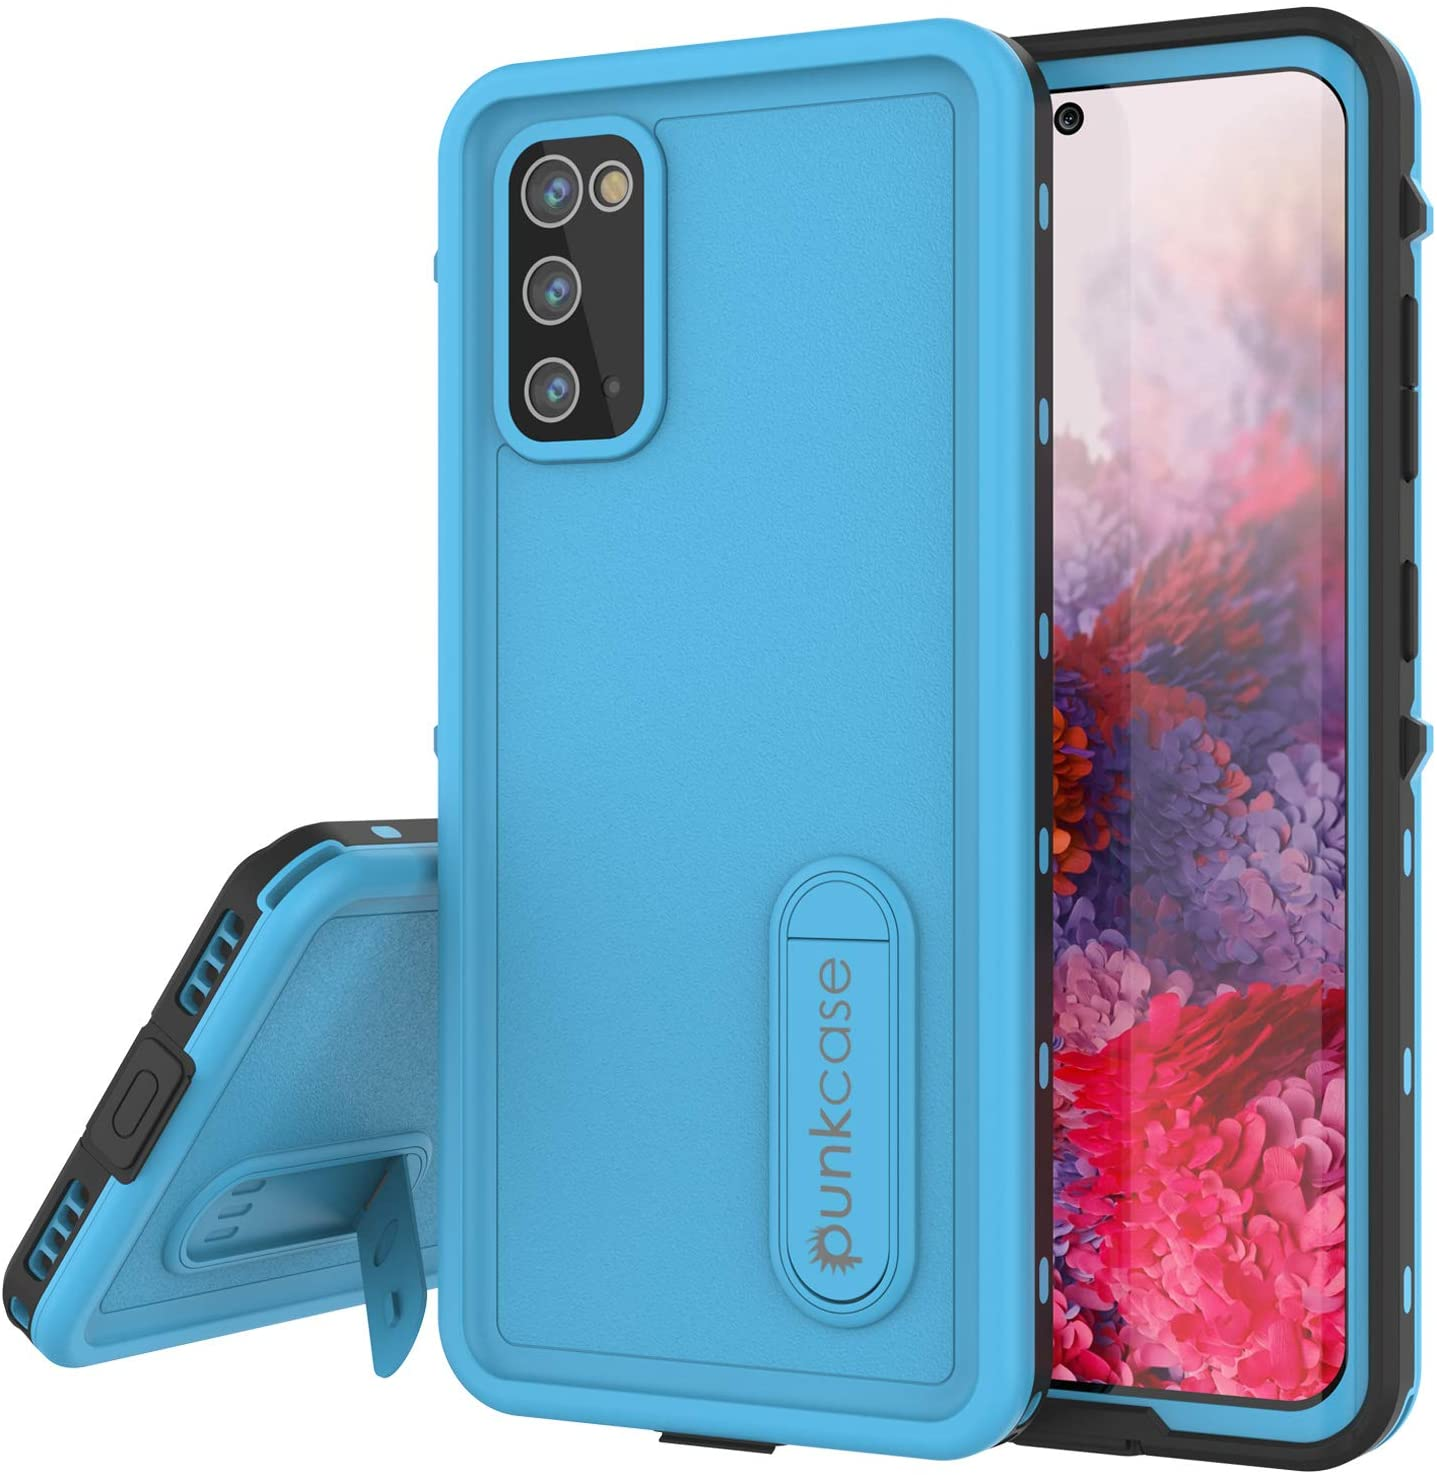 Galaxy S20 Waterproof Case, Punkcase [KickStud Series] Armor Cover [Light Blue]